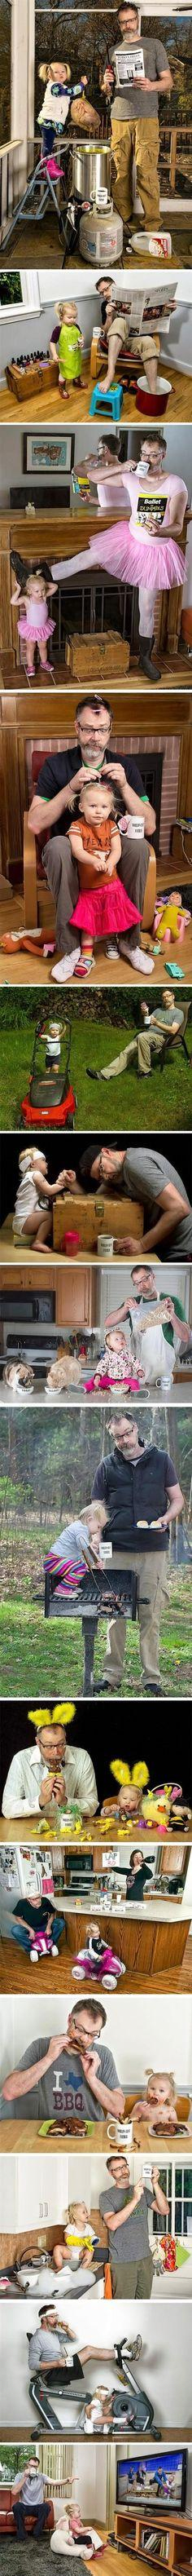 """Best Dad Ever? Love his smirk in each shot, the """"am I doing this the right way, ah to heck with it - just roll with it baby"""" look.: Picture, Giggle, Daddy Daughter Photo, So Funny, Father Daughter, Coolest Dad, Dads"""